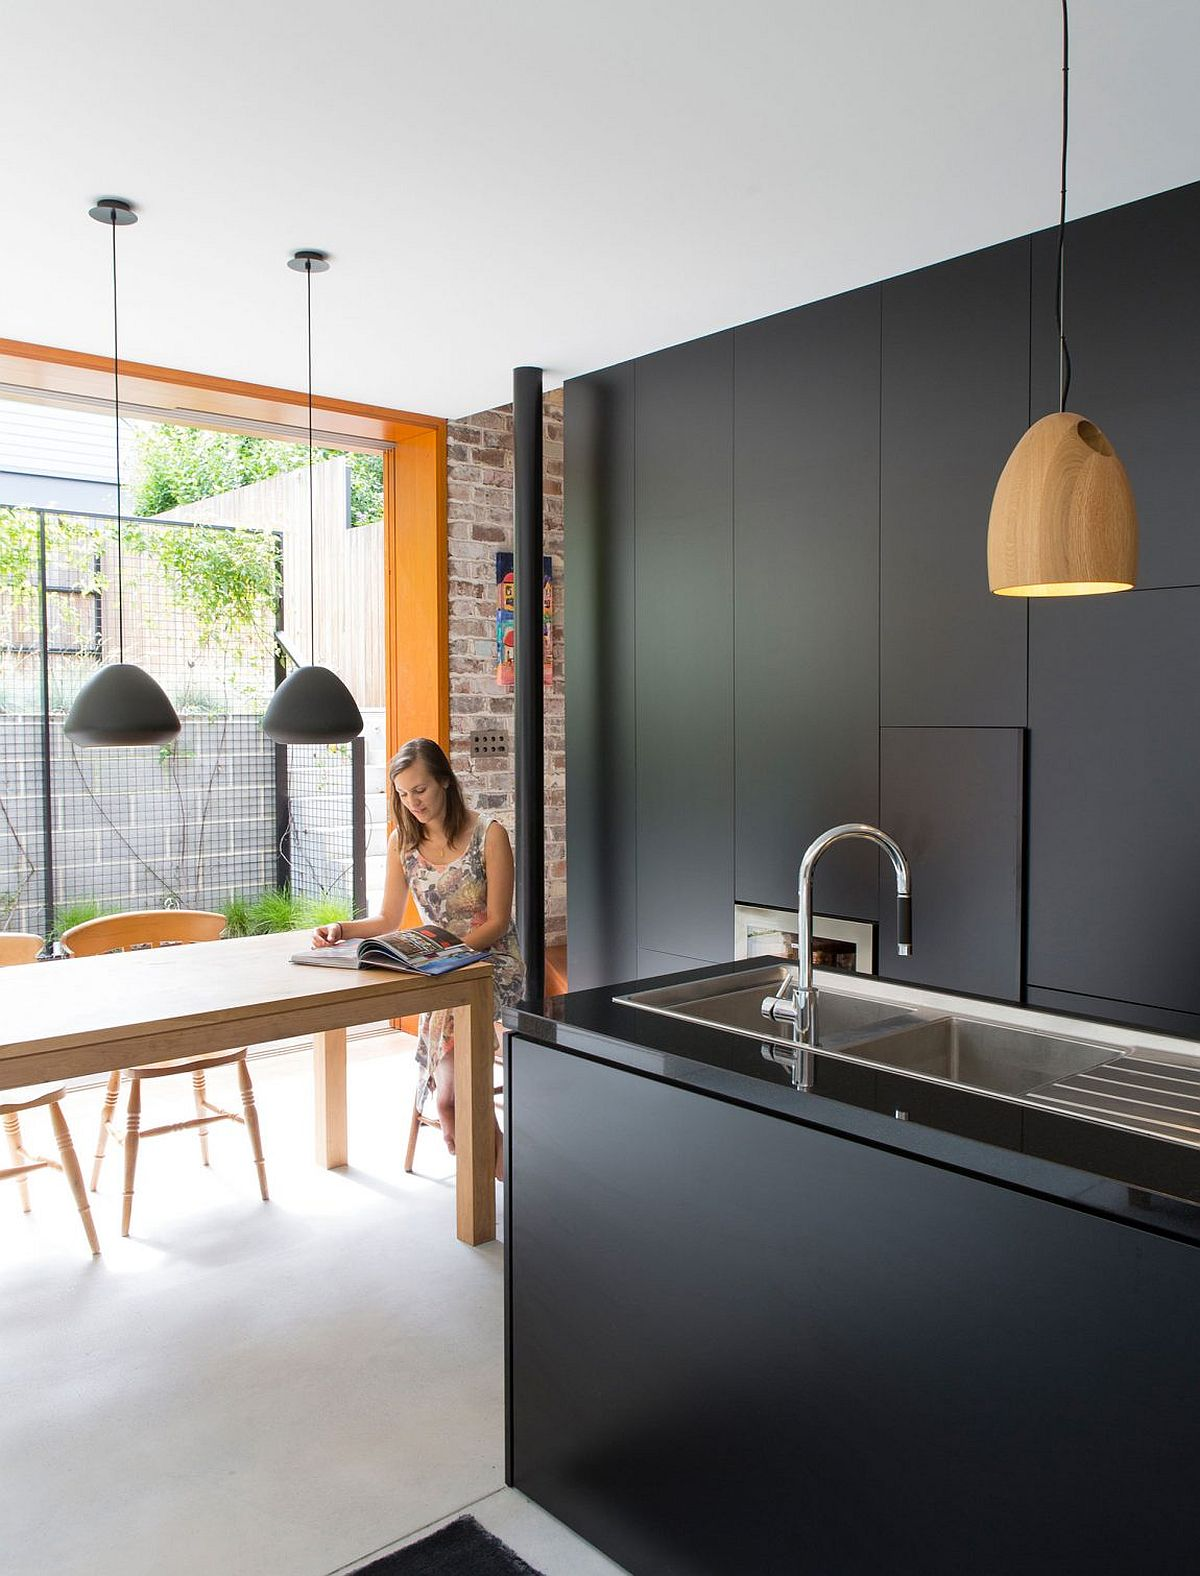 Dining space, kitchen and reading nook at the stylish Sydney home